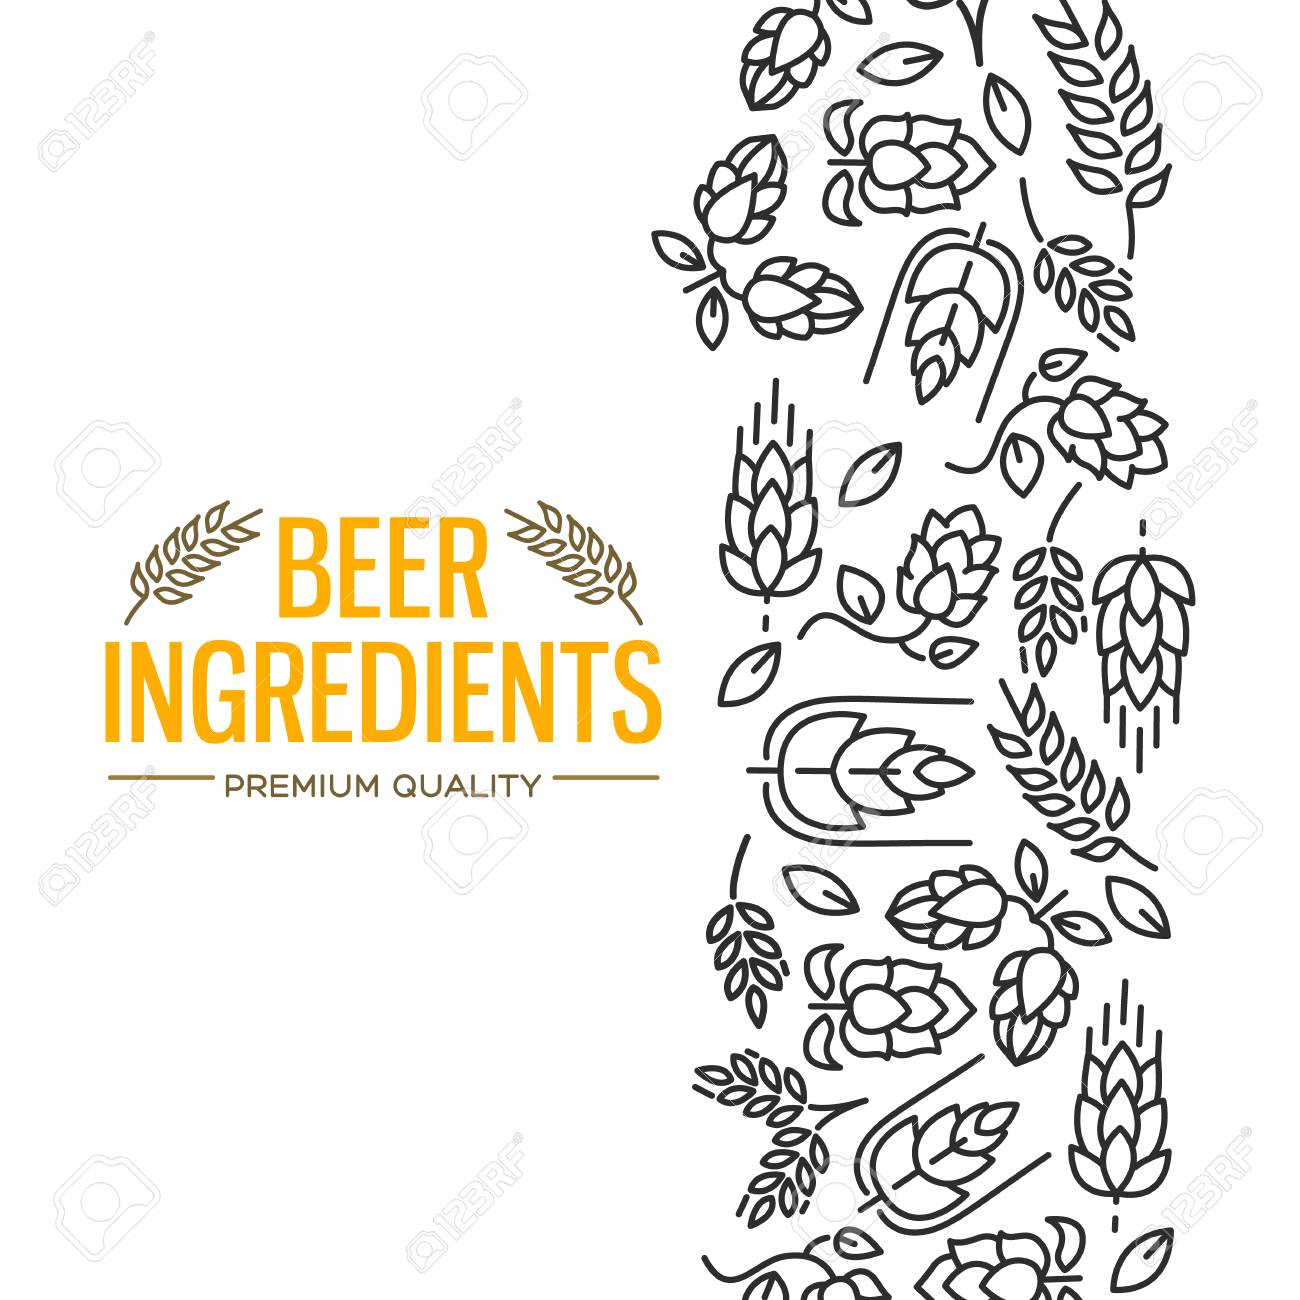 Stylish design card with images to the right of the yellow text beer ingredients of flowers, twig of hops, blossom, malt vector illustration - 93567348